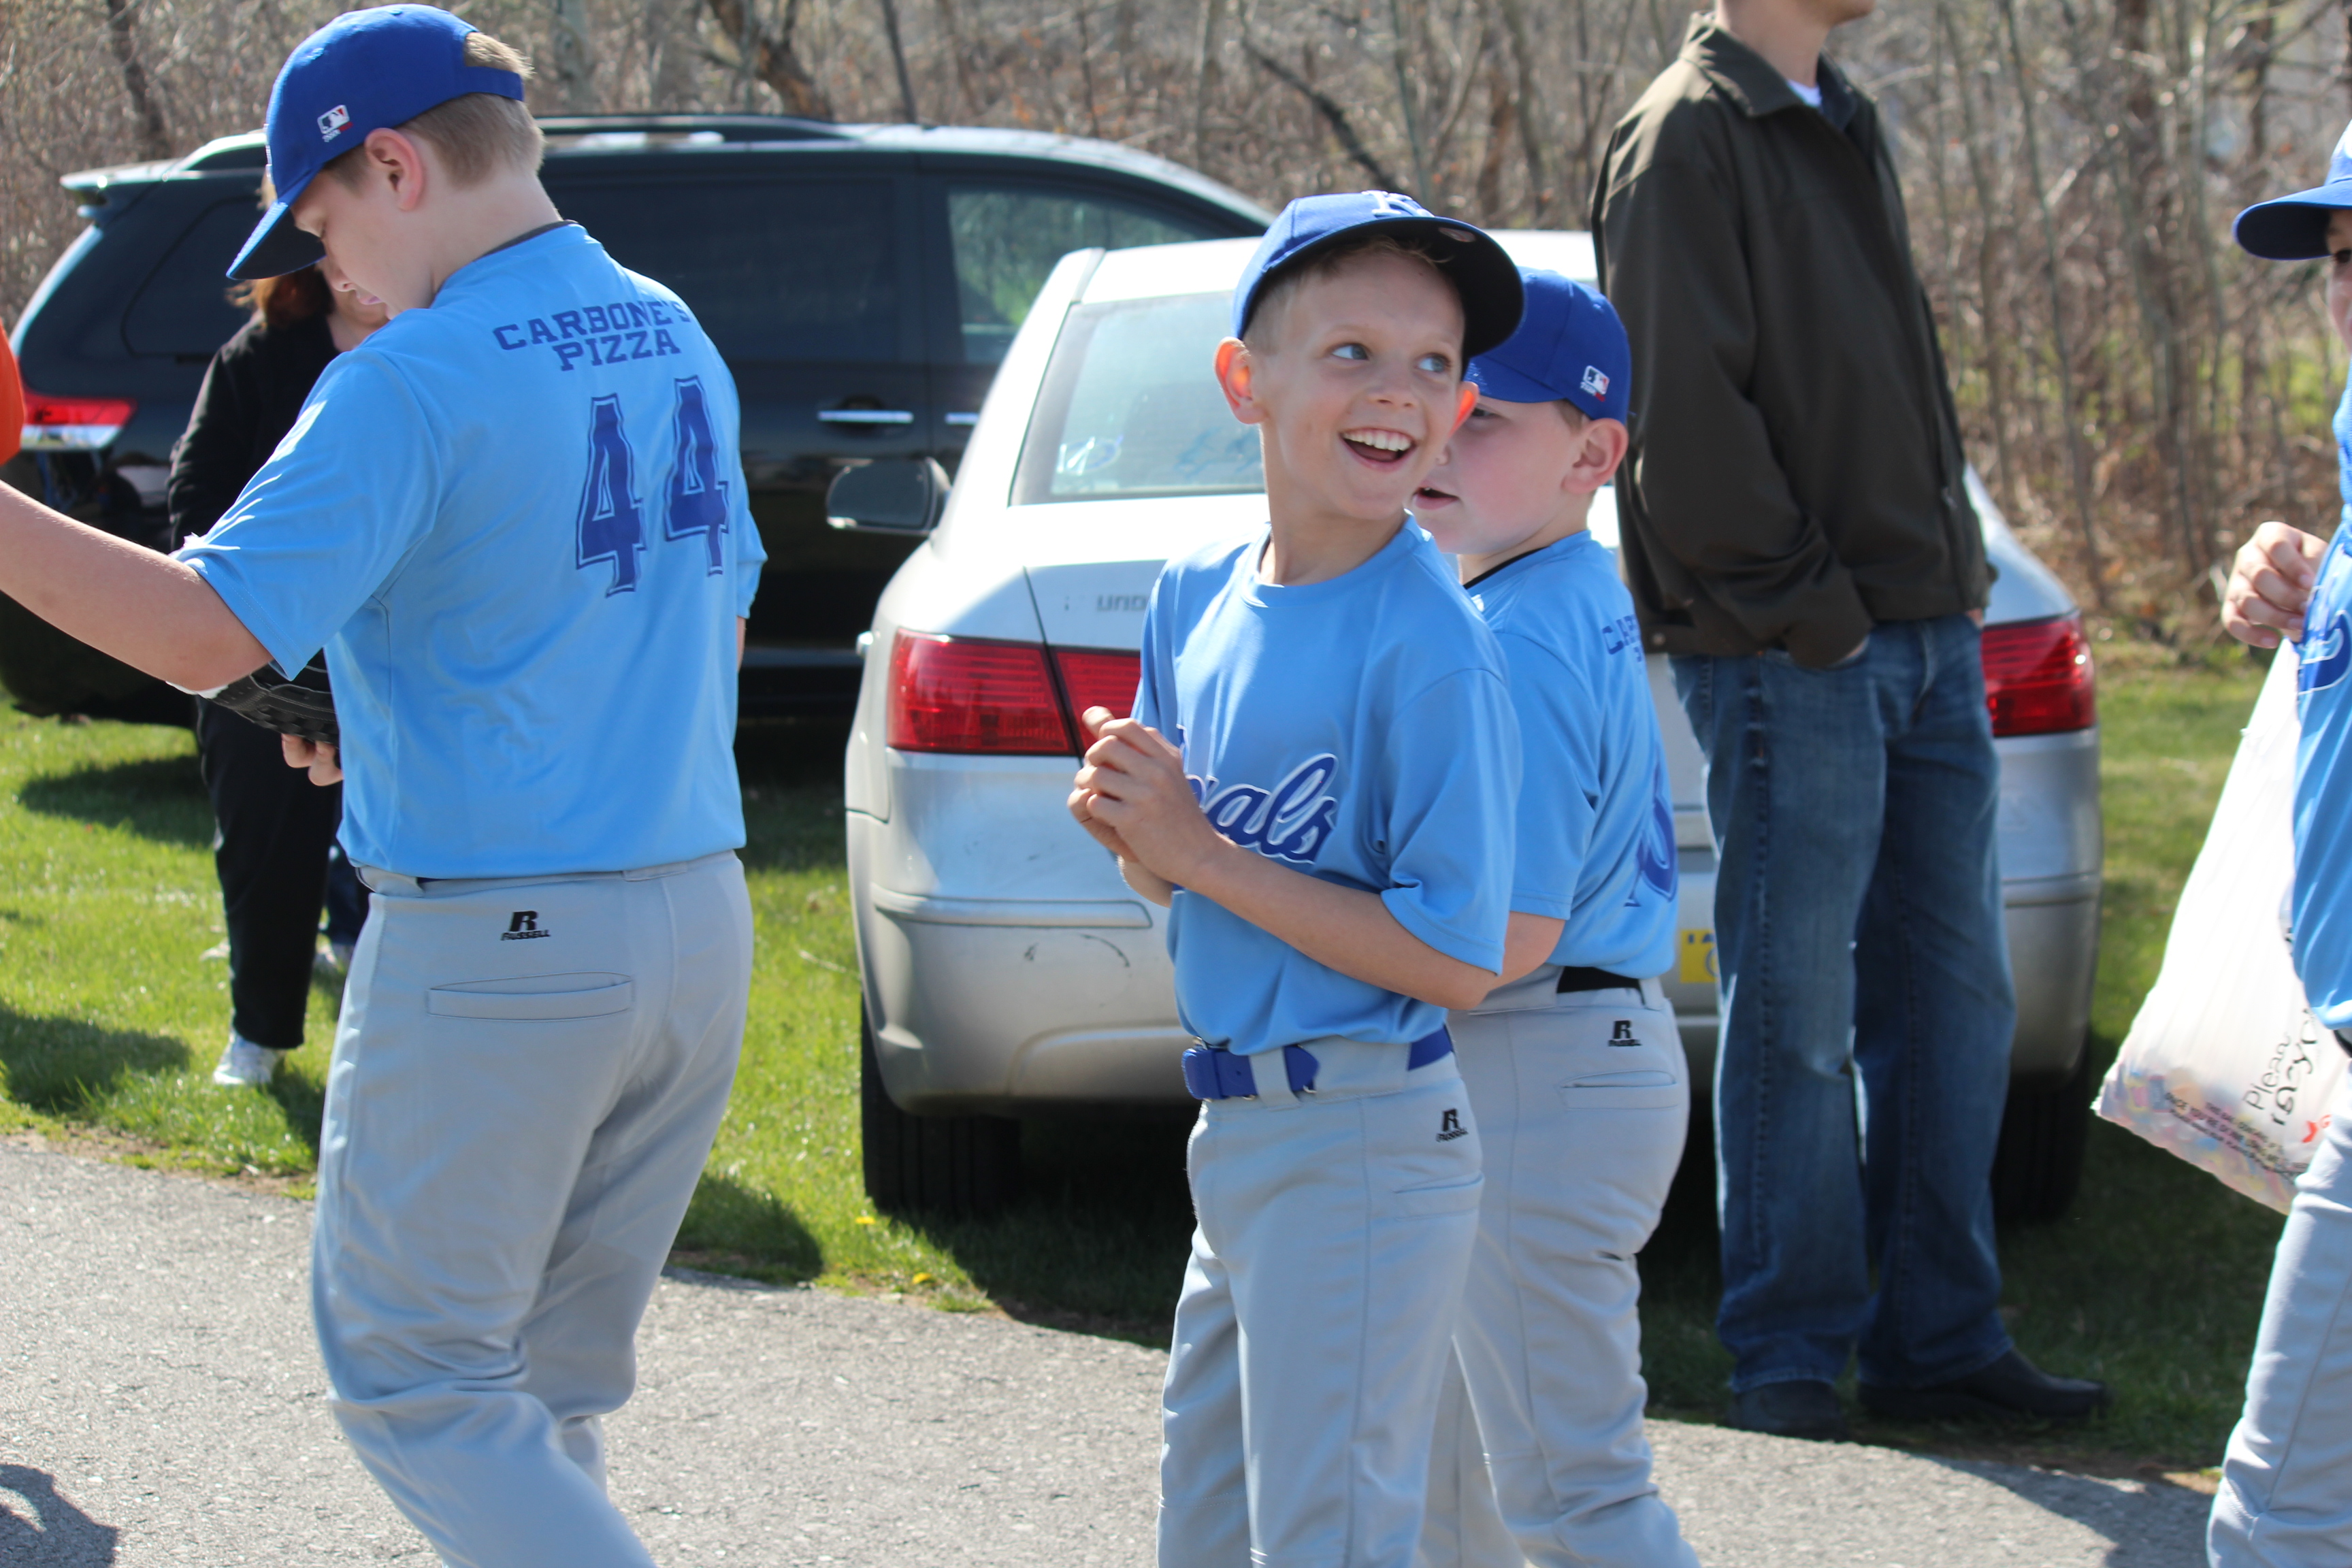 Youth Baseball Opening Day Parade